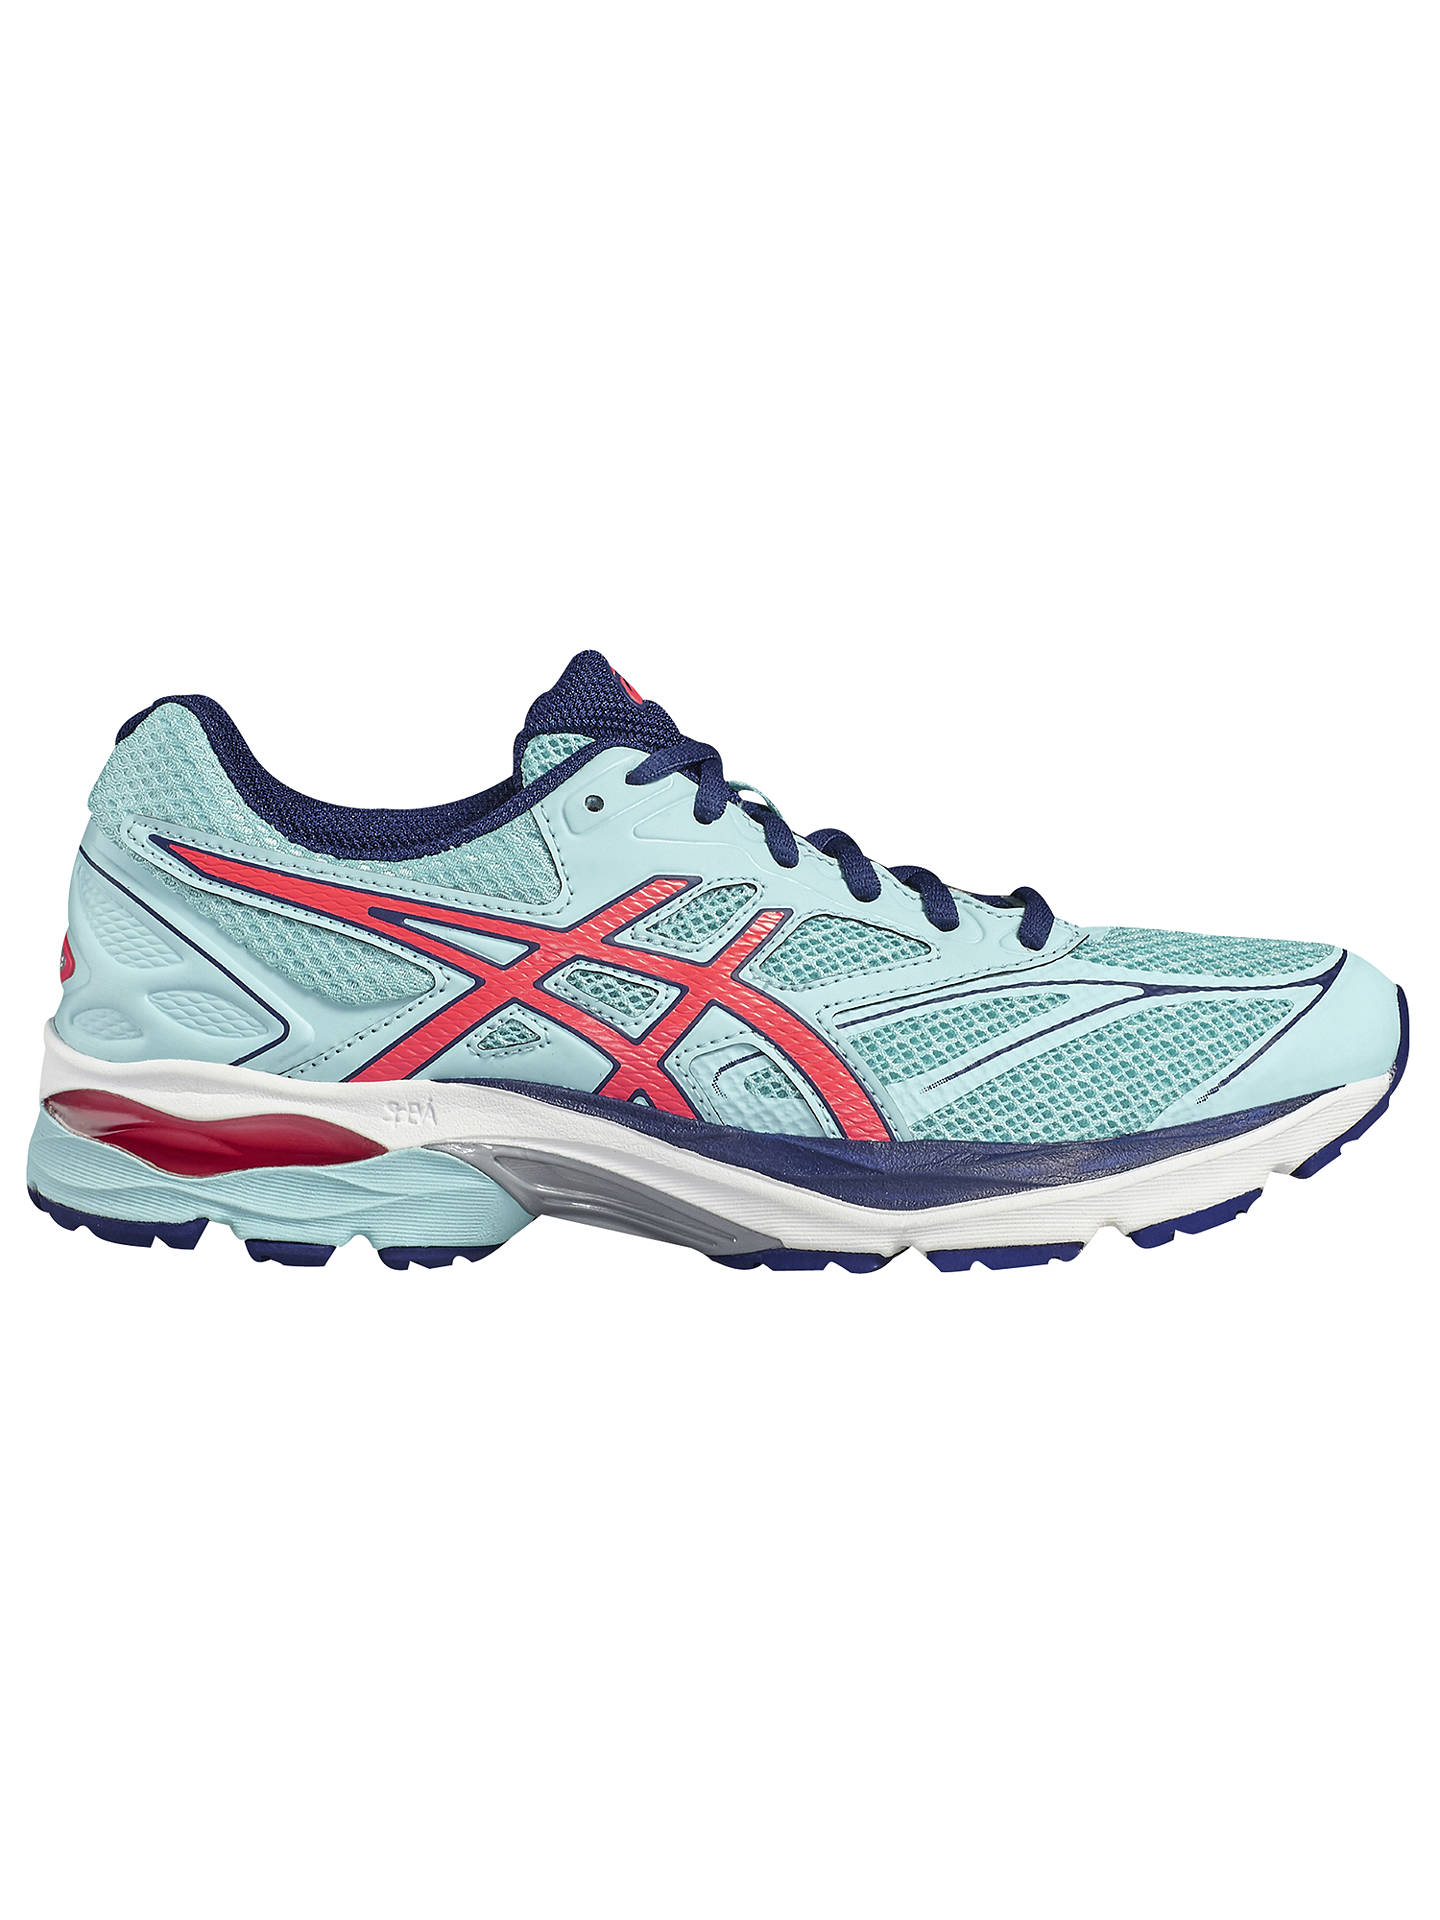 0195bf007 Buy Asics GEL-PULSE 8 Women's Running Shoes, Blue/Pink, 6 Online ...